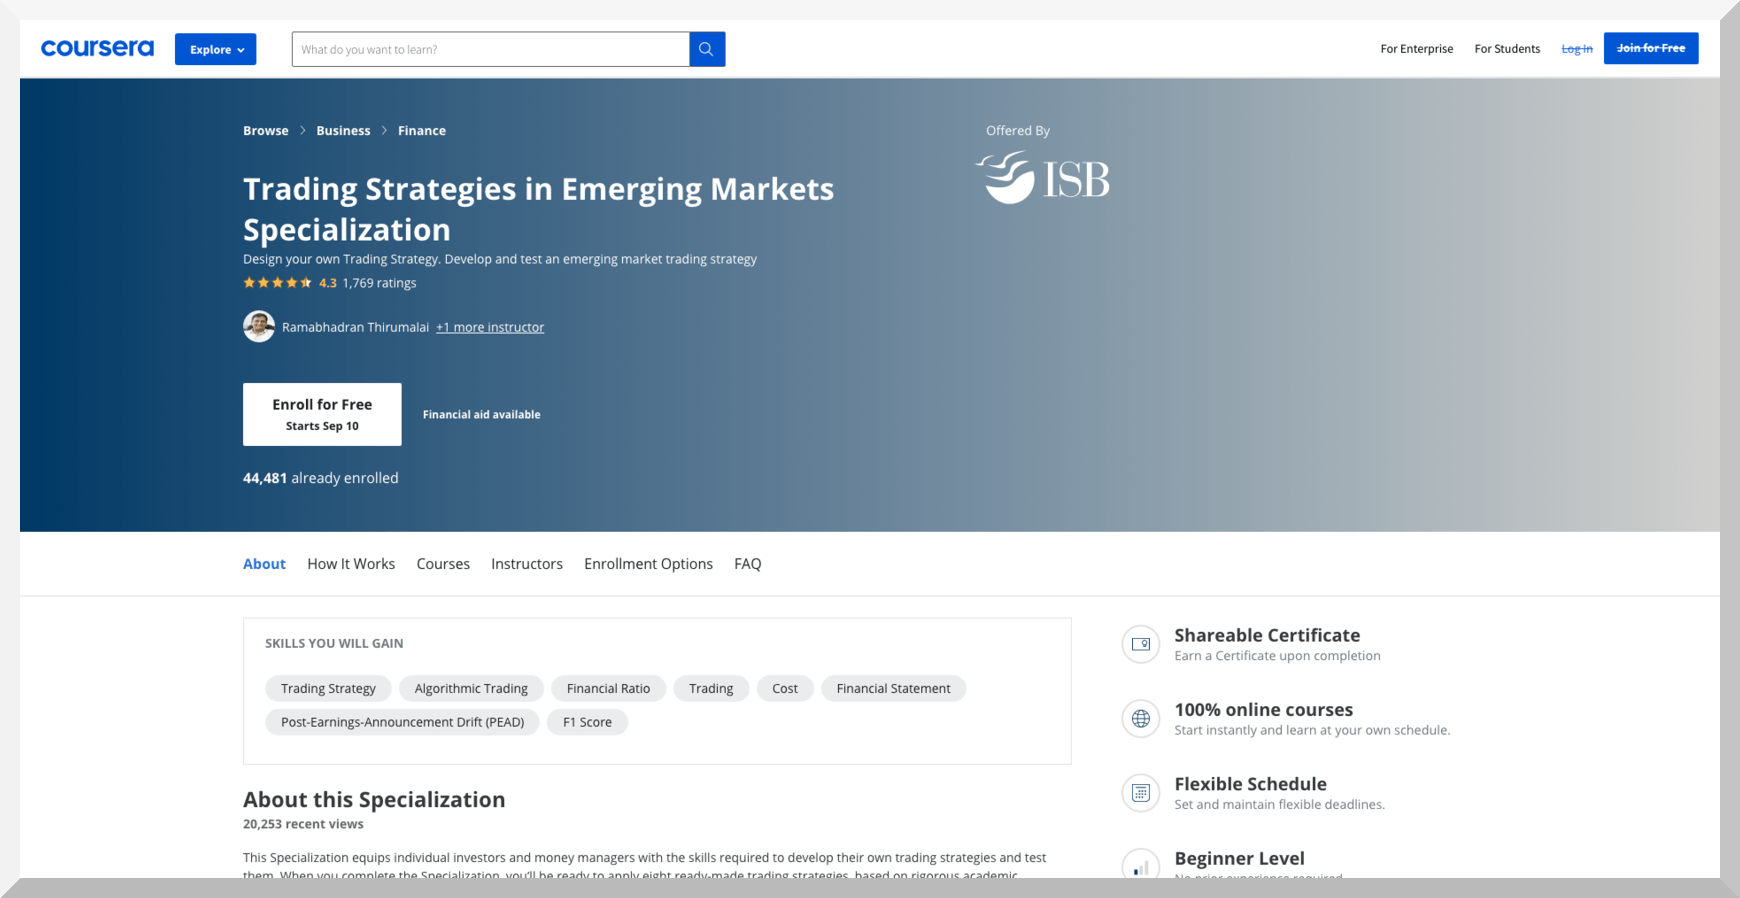 Trading Strategies in Emerging Markets Specialization- Coursera